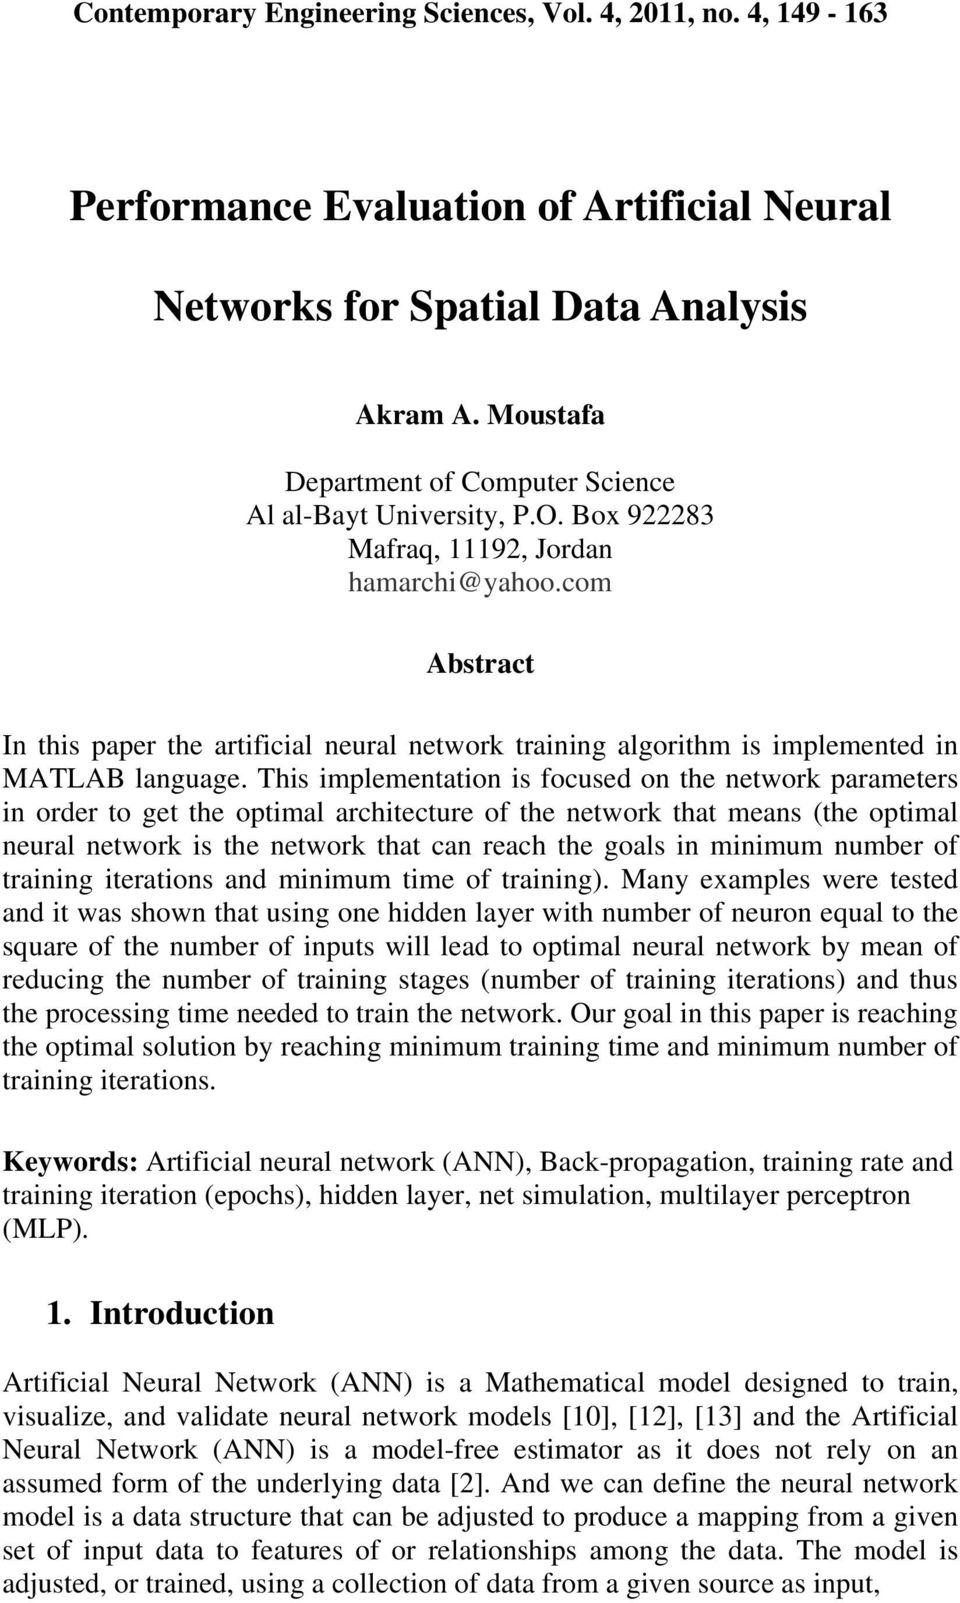 Performance Evaluation of Artificial Neural  Networks for